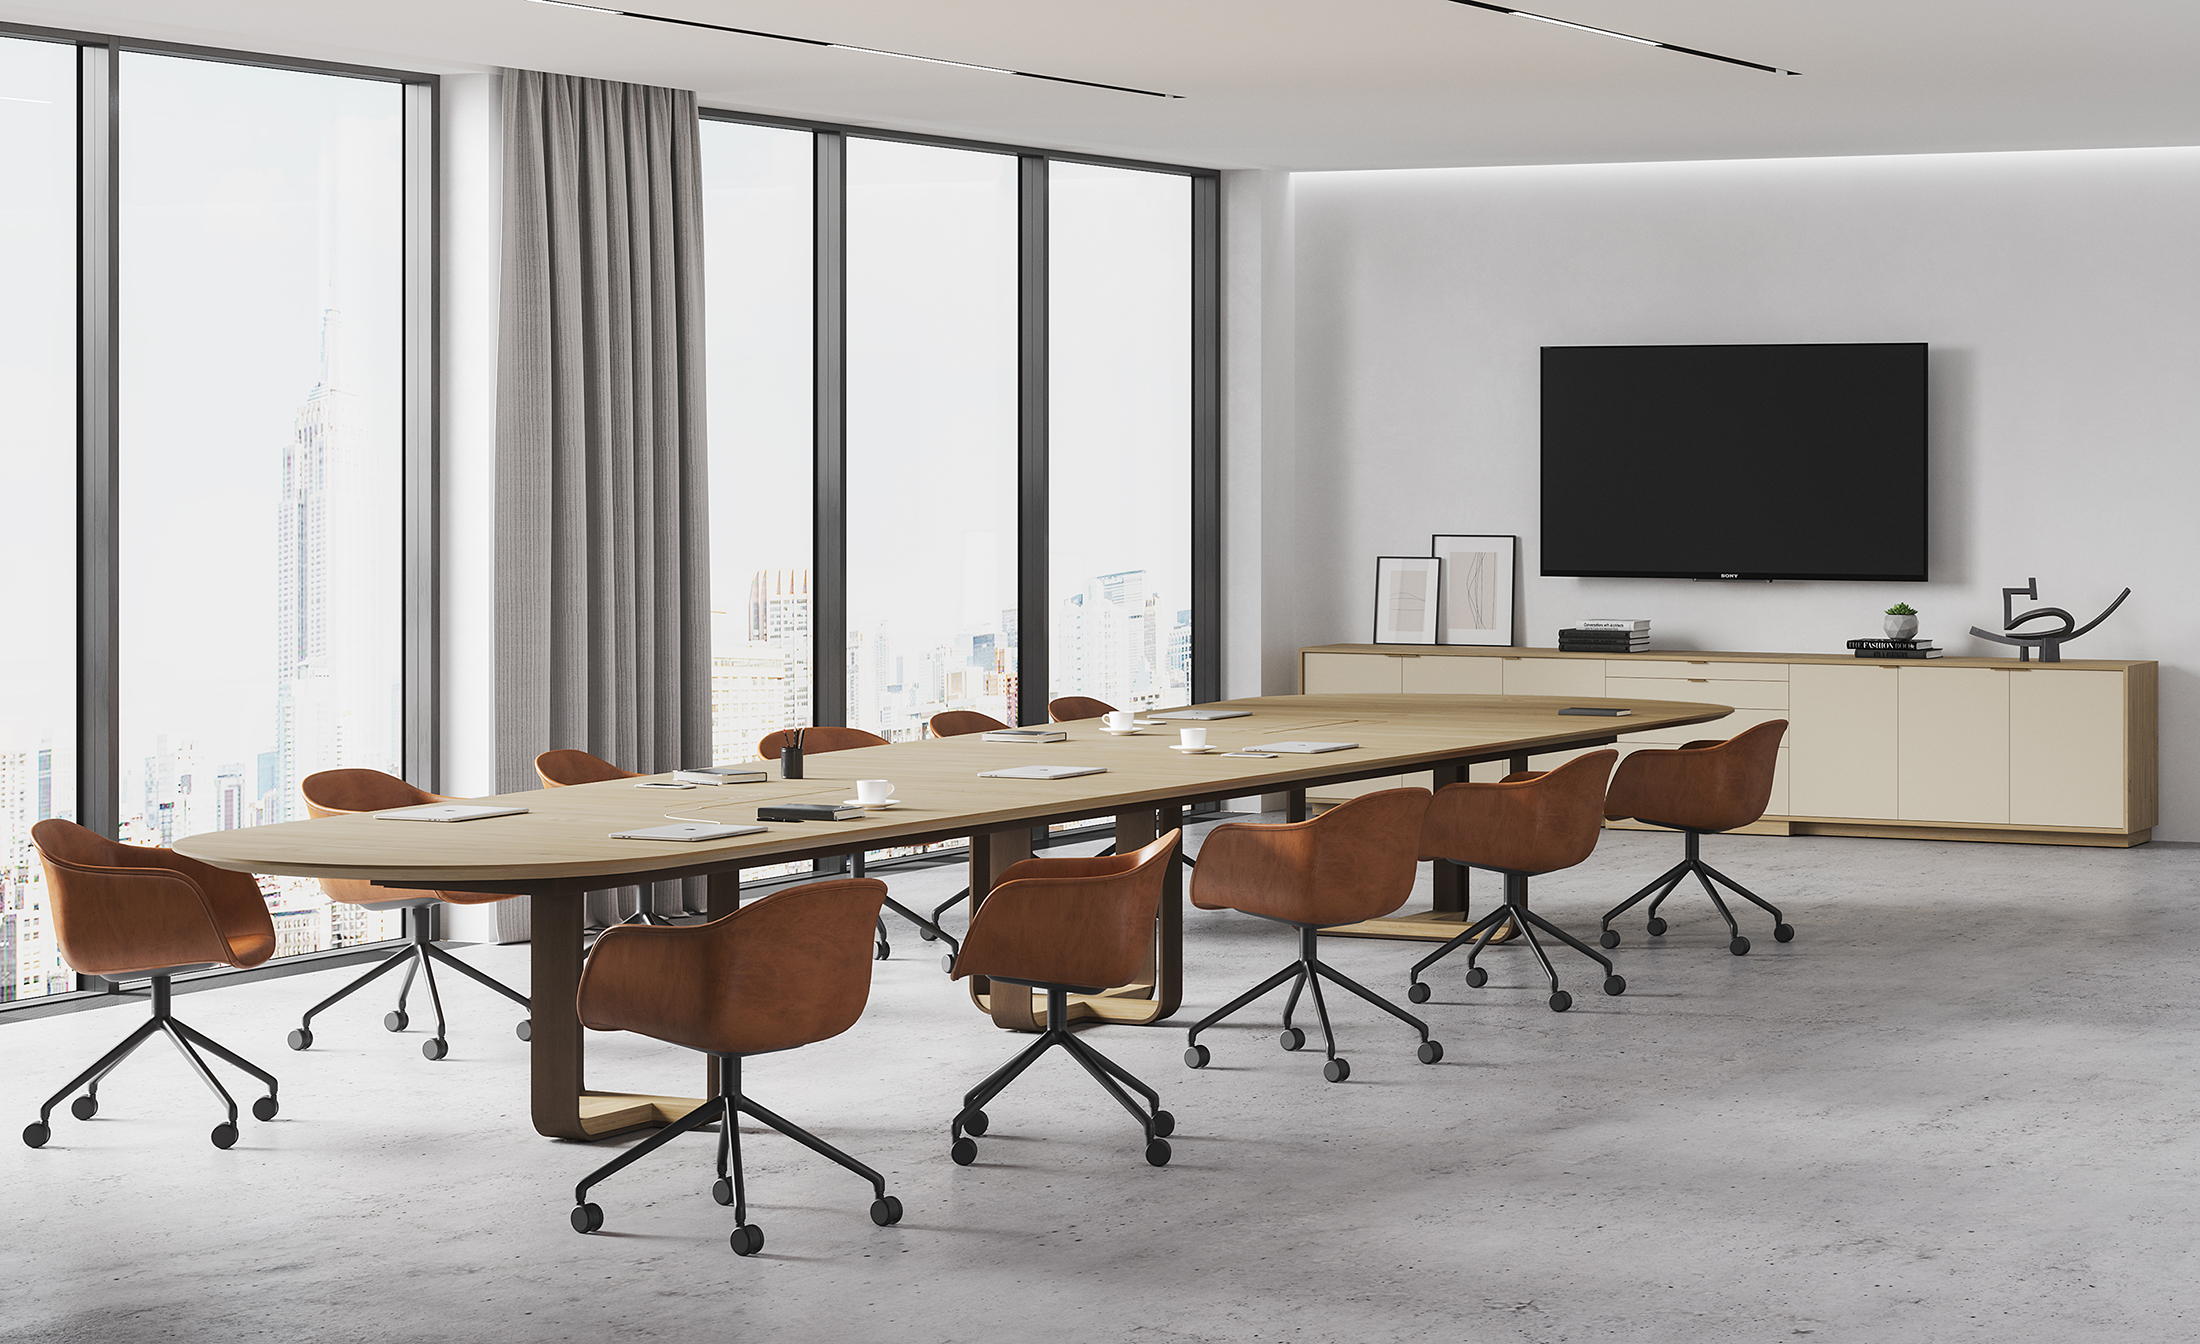 8_skram_piedmont boardroom table